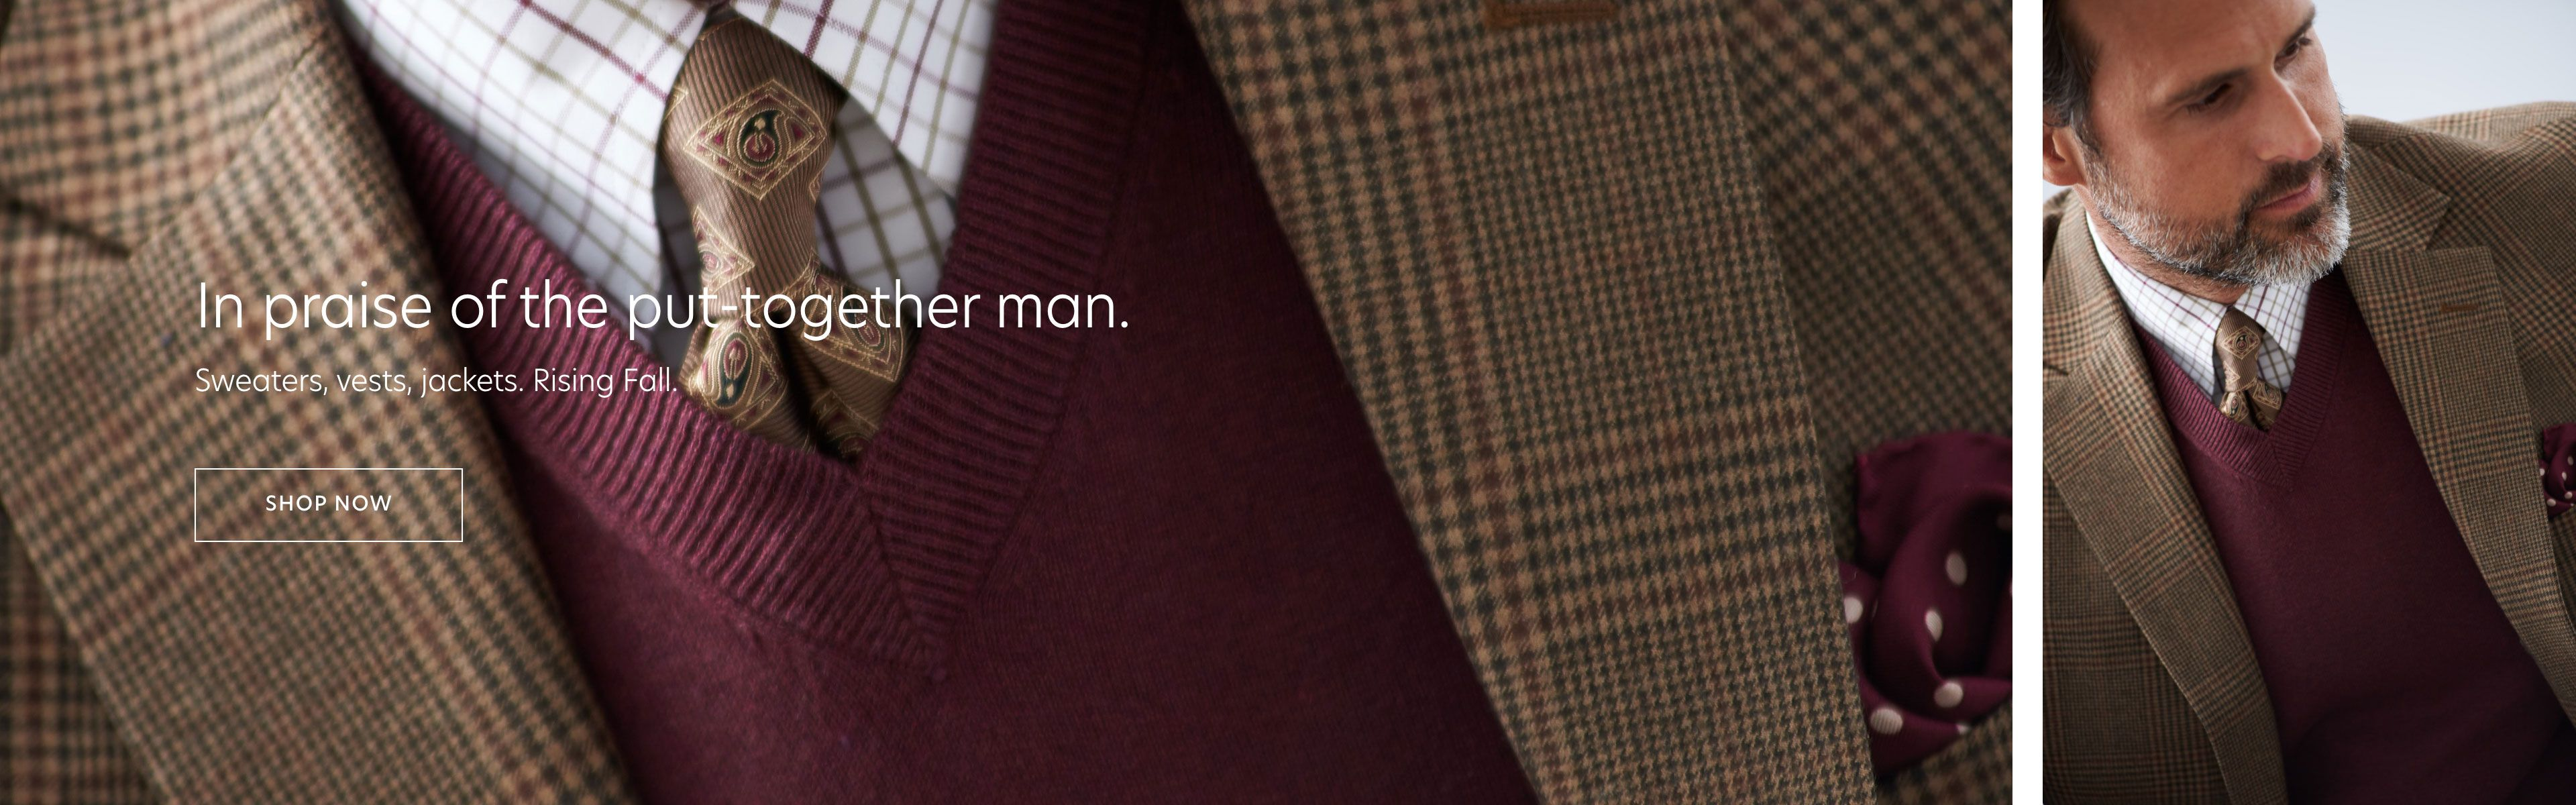 Fall Sweaters & Sport Coats